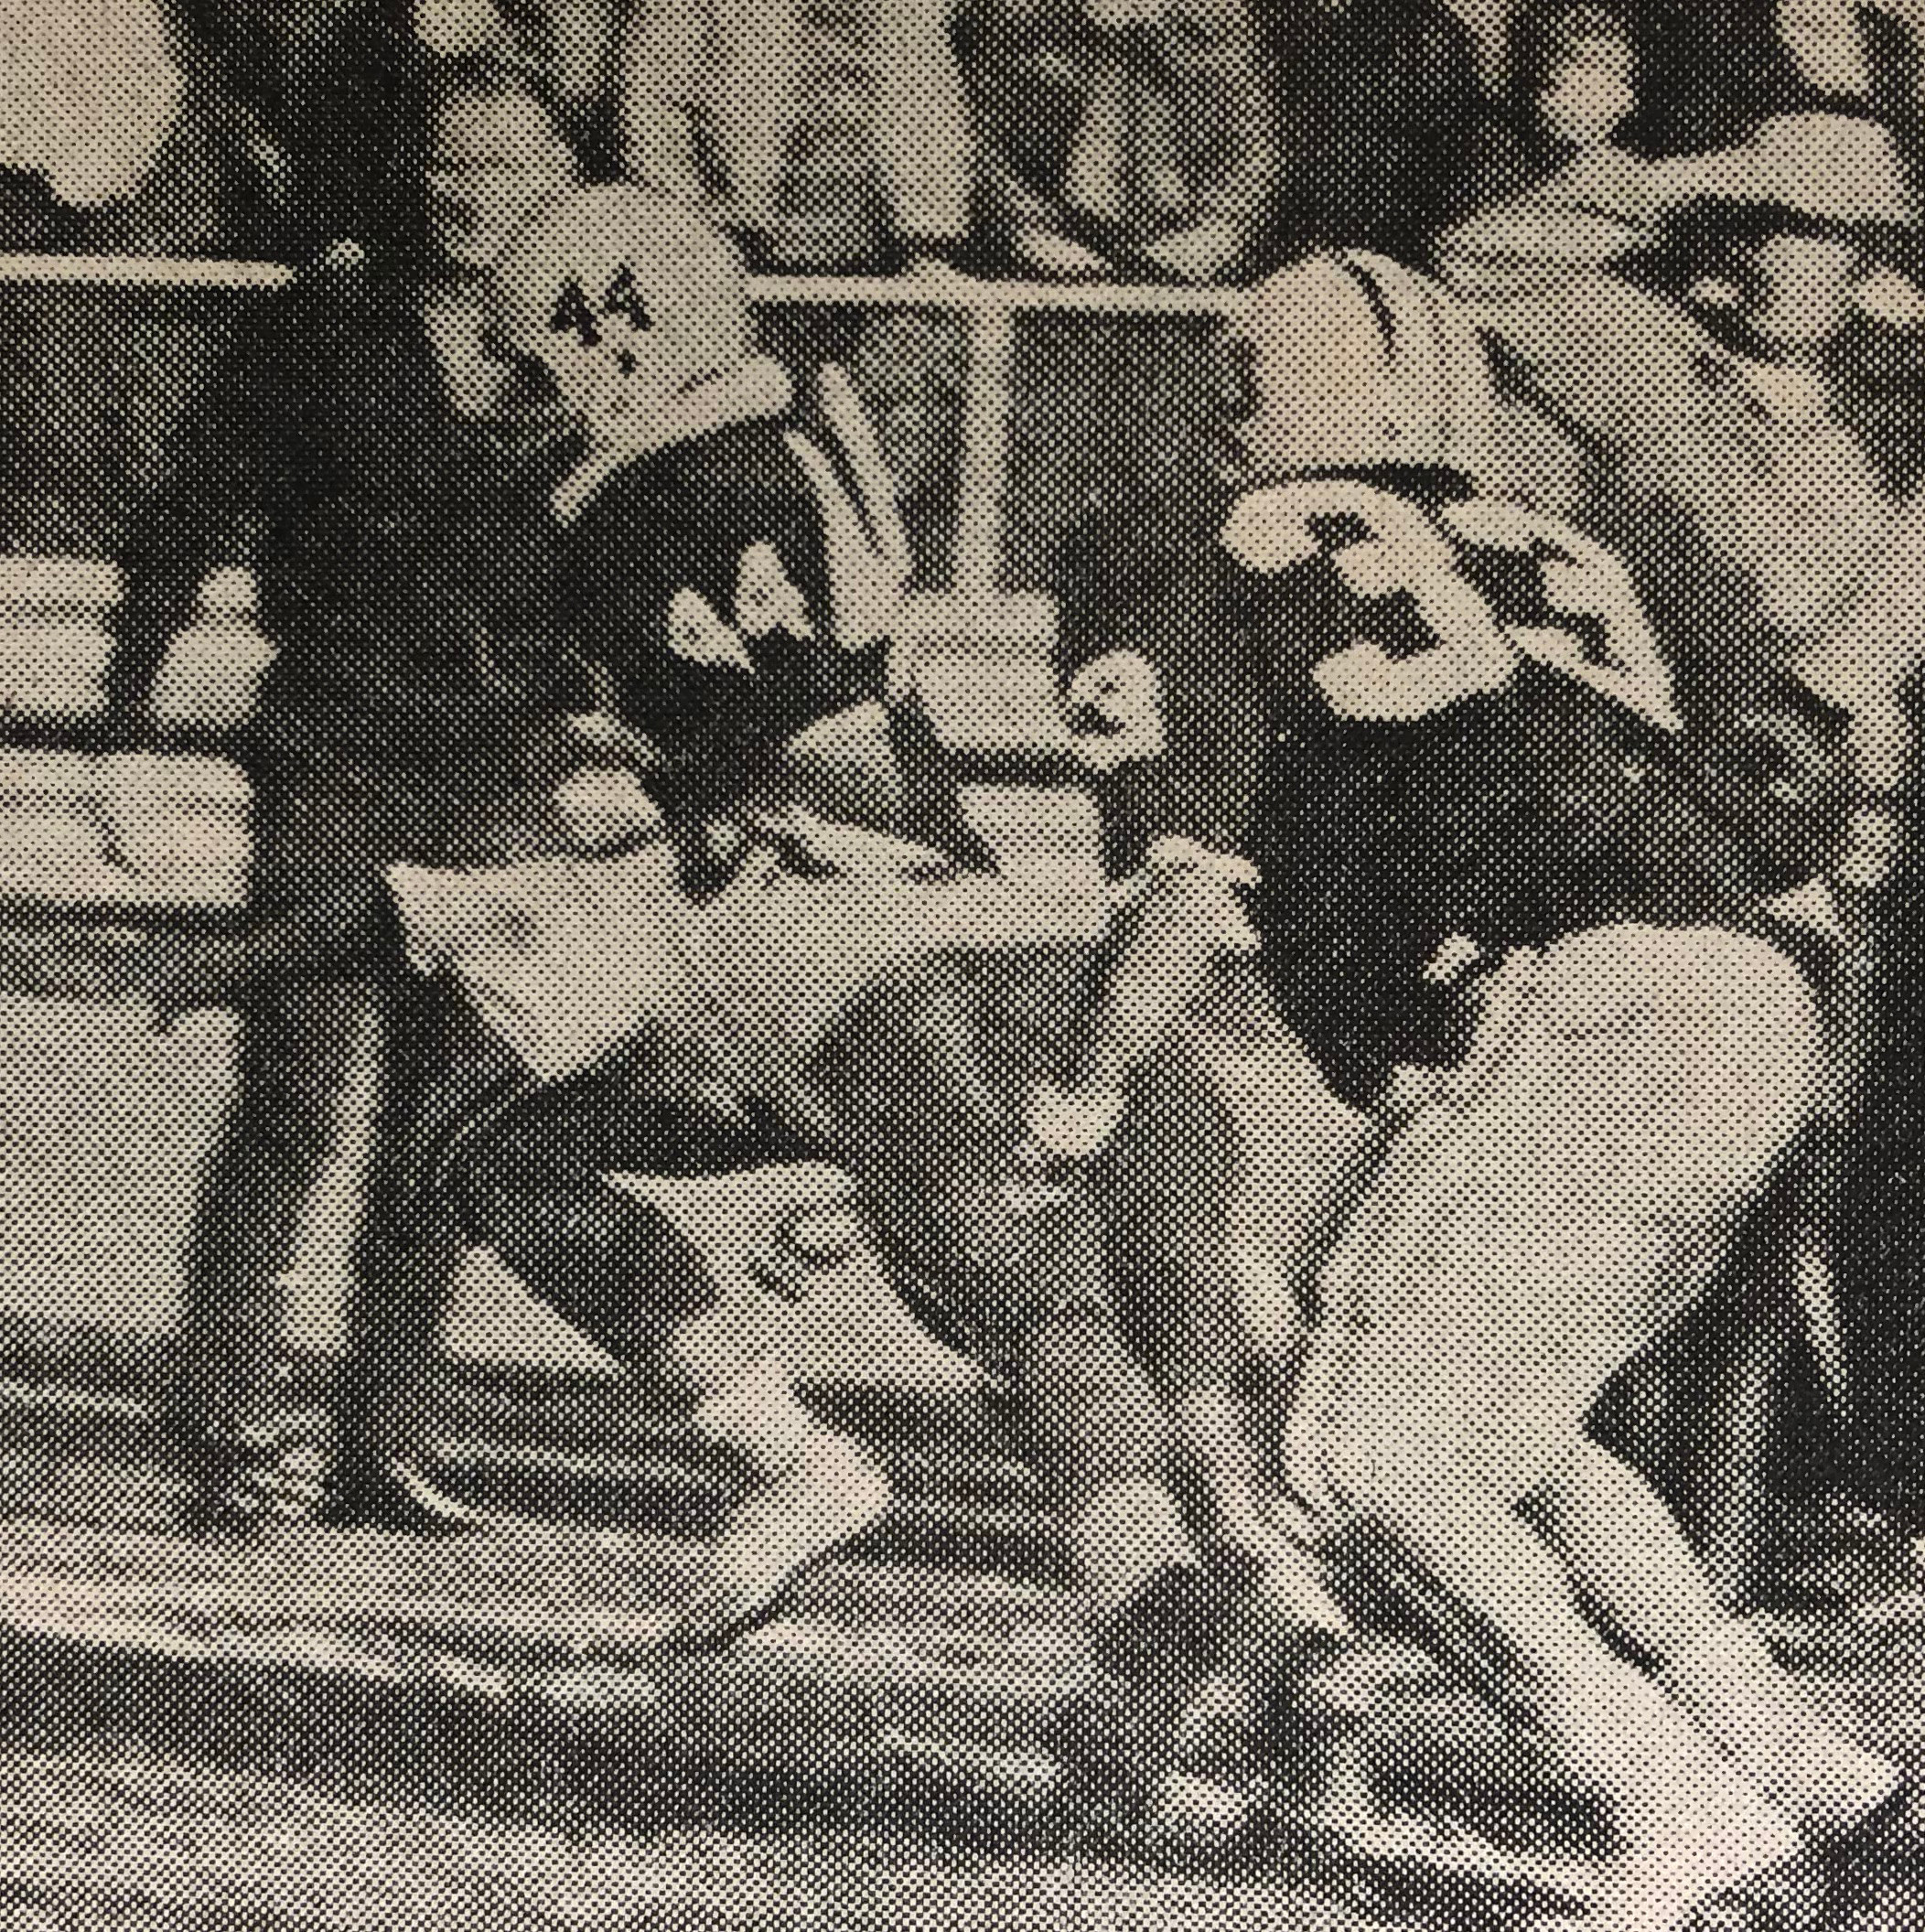 Rod Wert scampers wide to score Middletown's second touchdown against the Spartans. A Hershey defender is shown attempting a flying tackle but Wert is just steps away from the goal line. Steve Mrakovich is the other Blue Raider pictured.